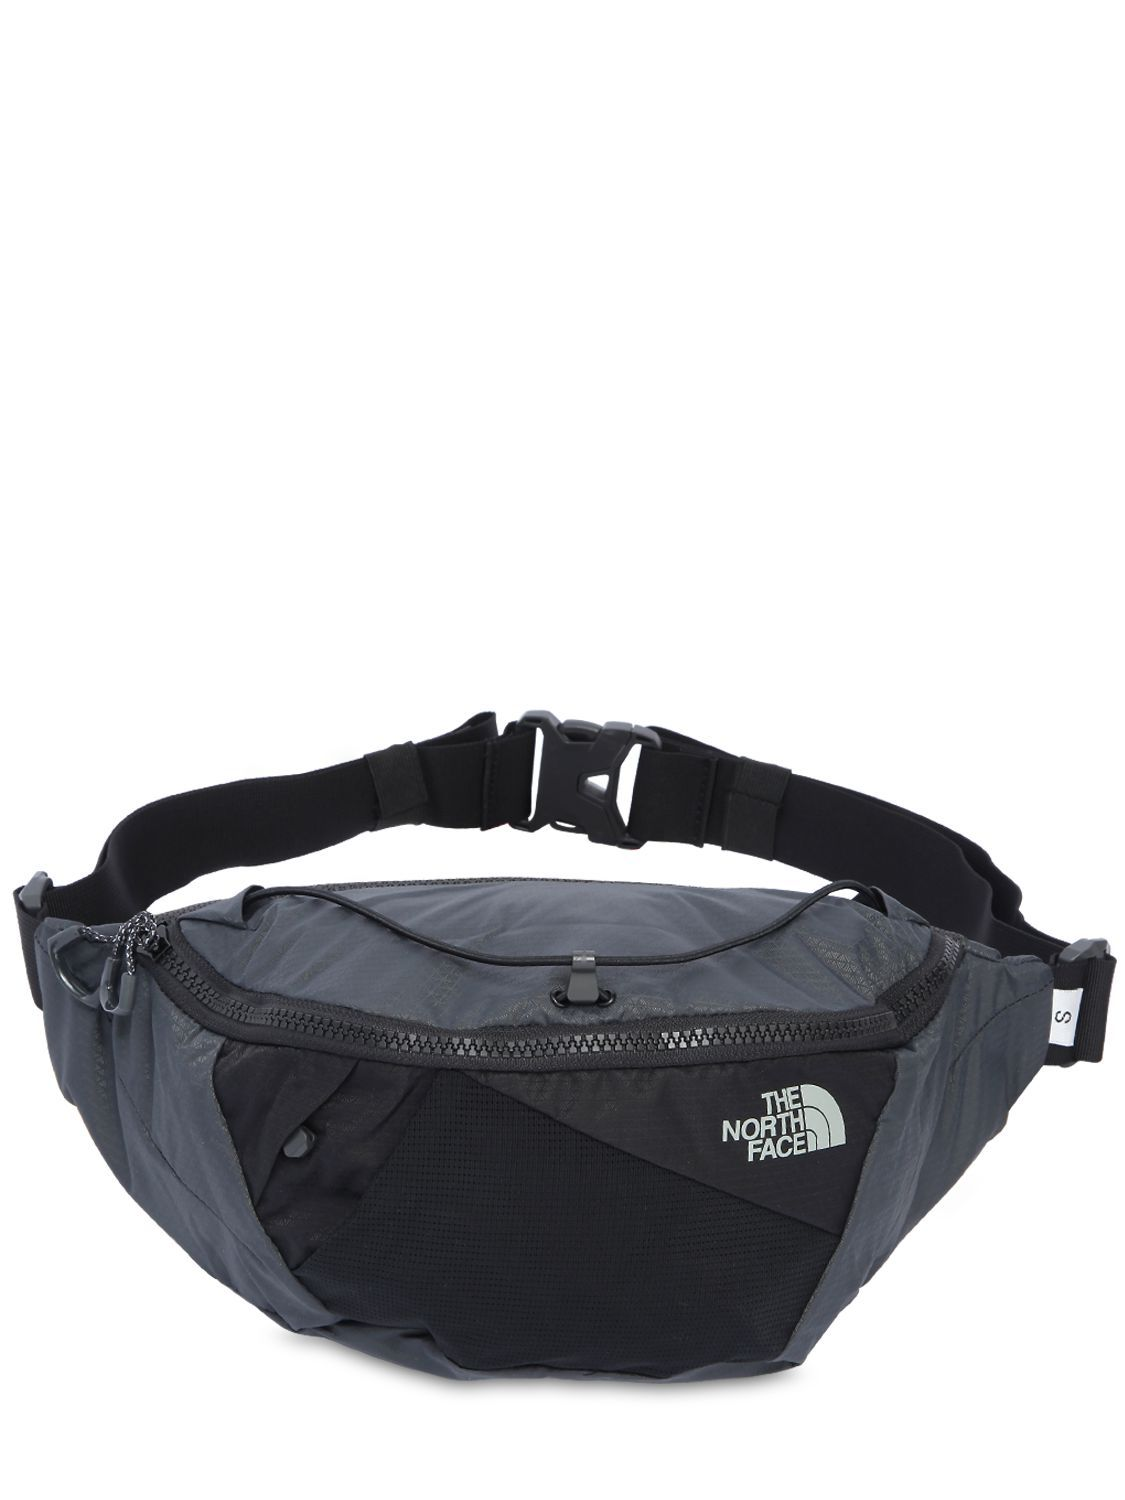 c14d83503a THE NORTH FACE . #thenorthface #bags #belt bags # | The North Face ...